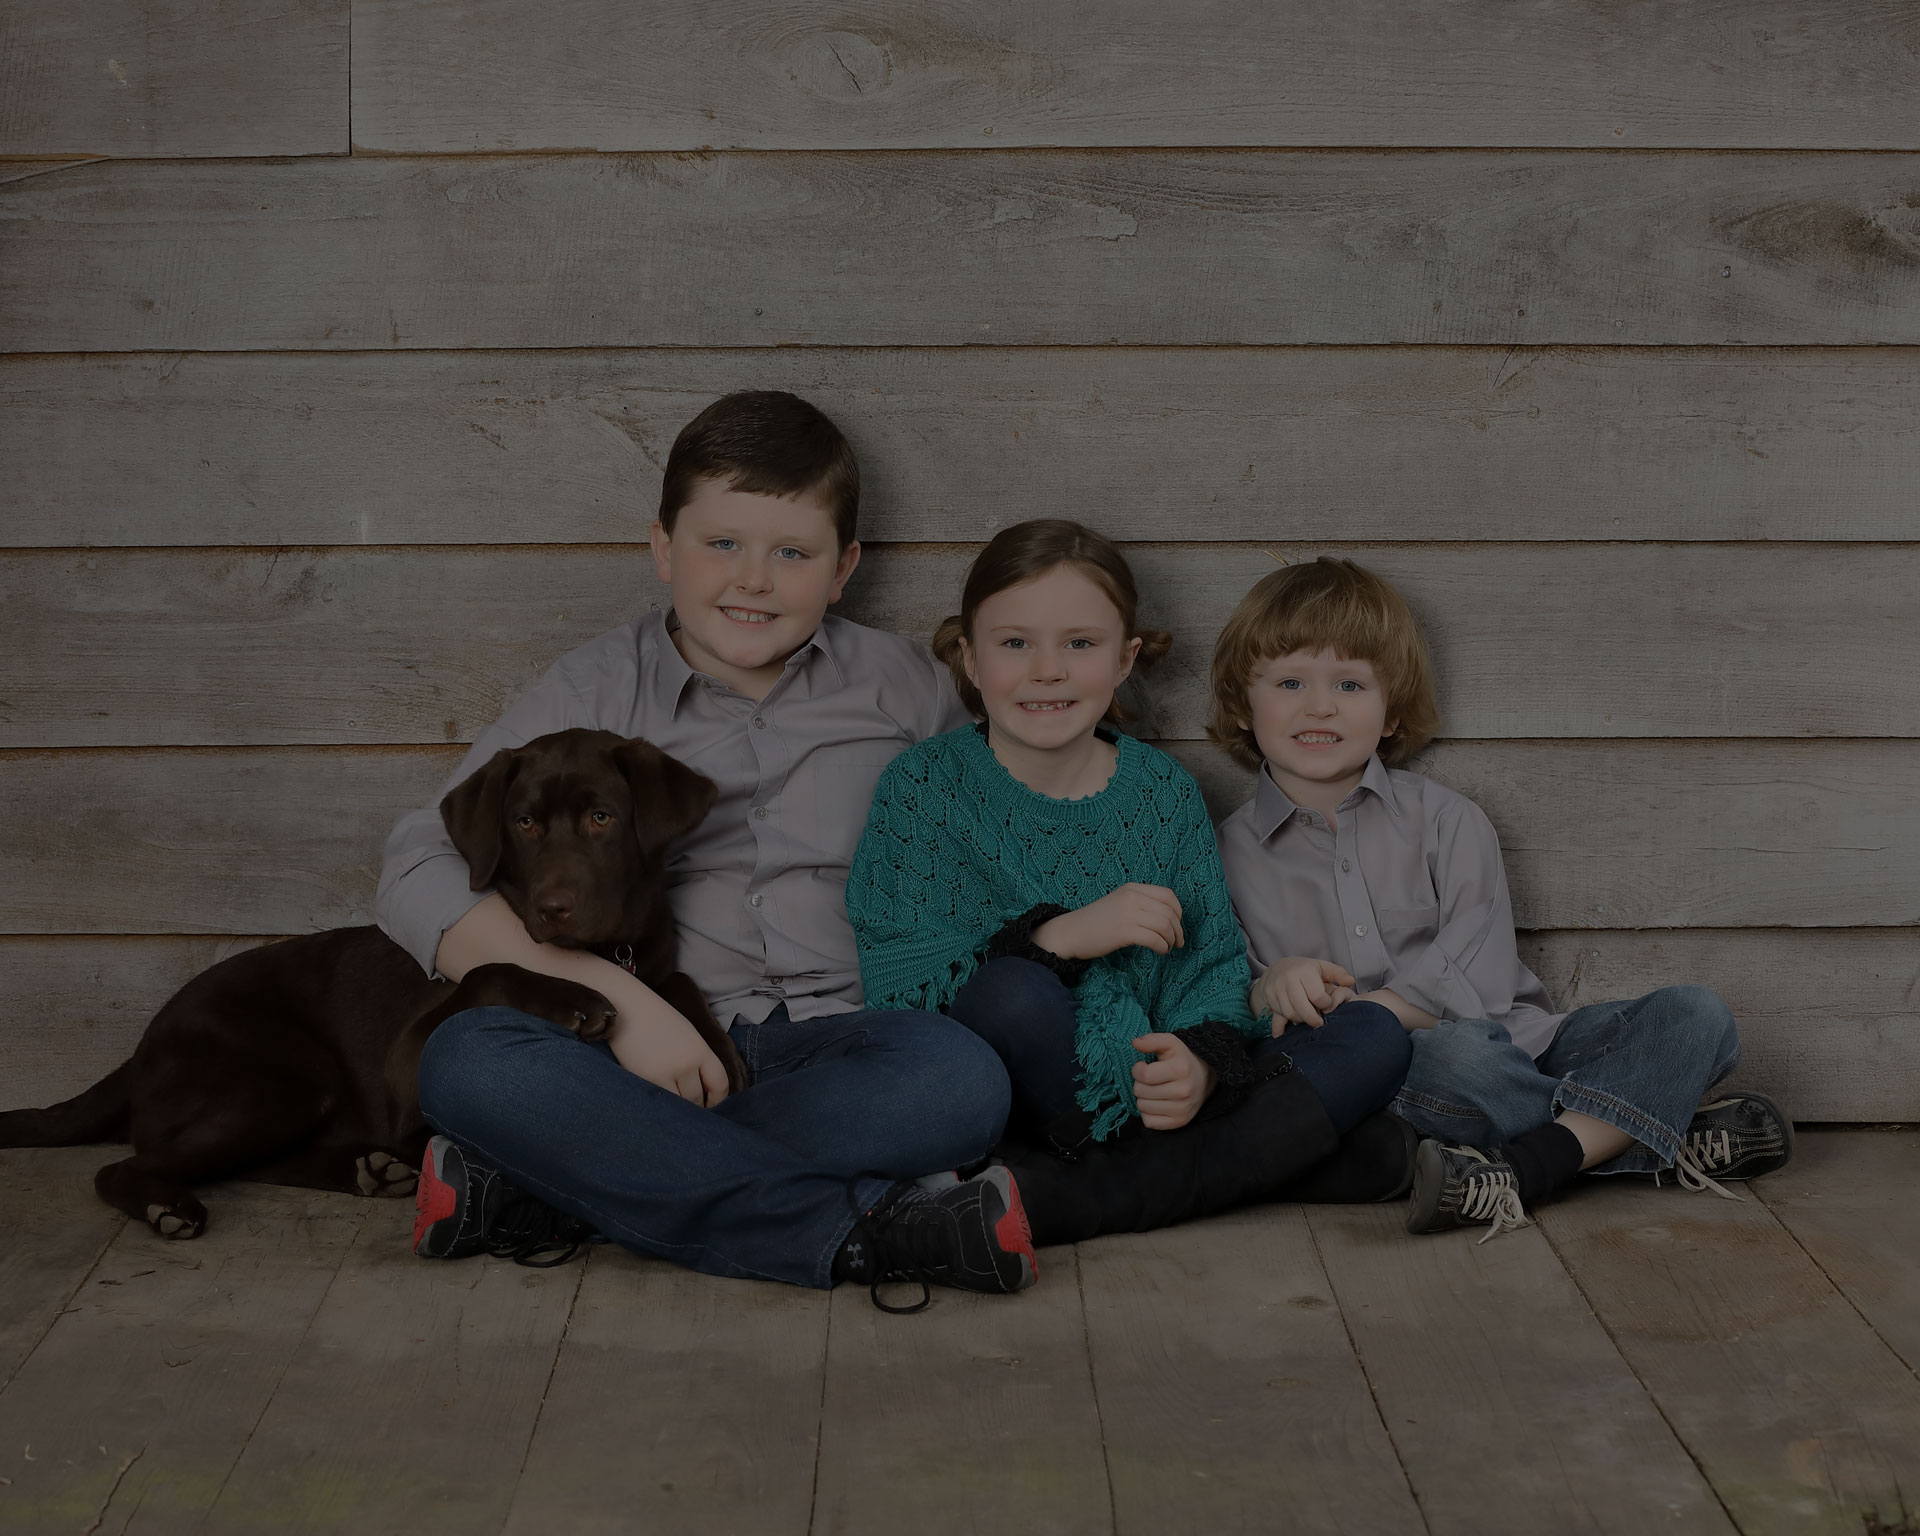 3 children siting on the wooden floor with a chocolate color Labrador dog